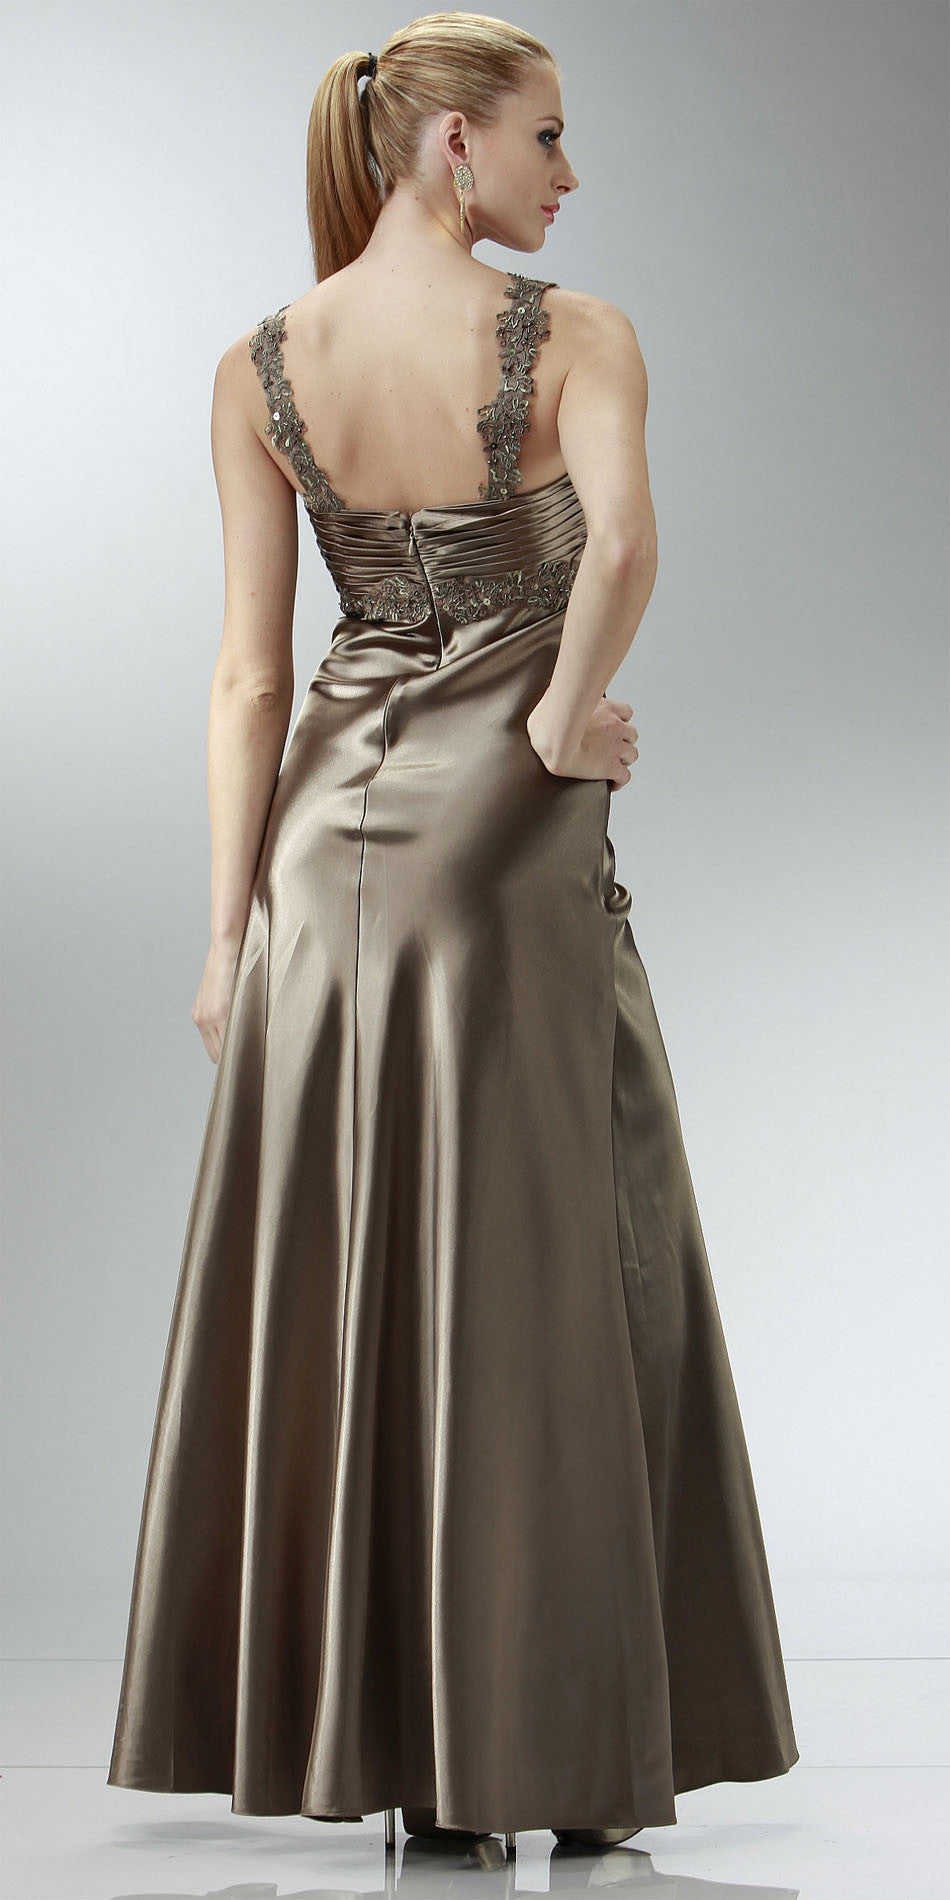 238ec7c58cd ... ON SPECIAL LIMITED STOCK - Cheap Mocha Prom Dress Full Length Satin  Gown Applique Cross Straps ...